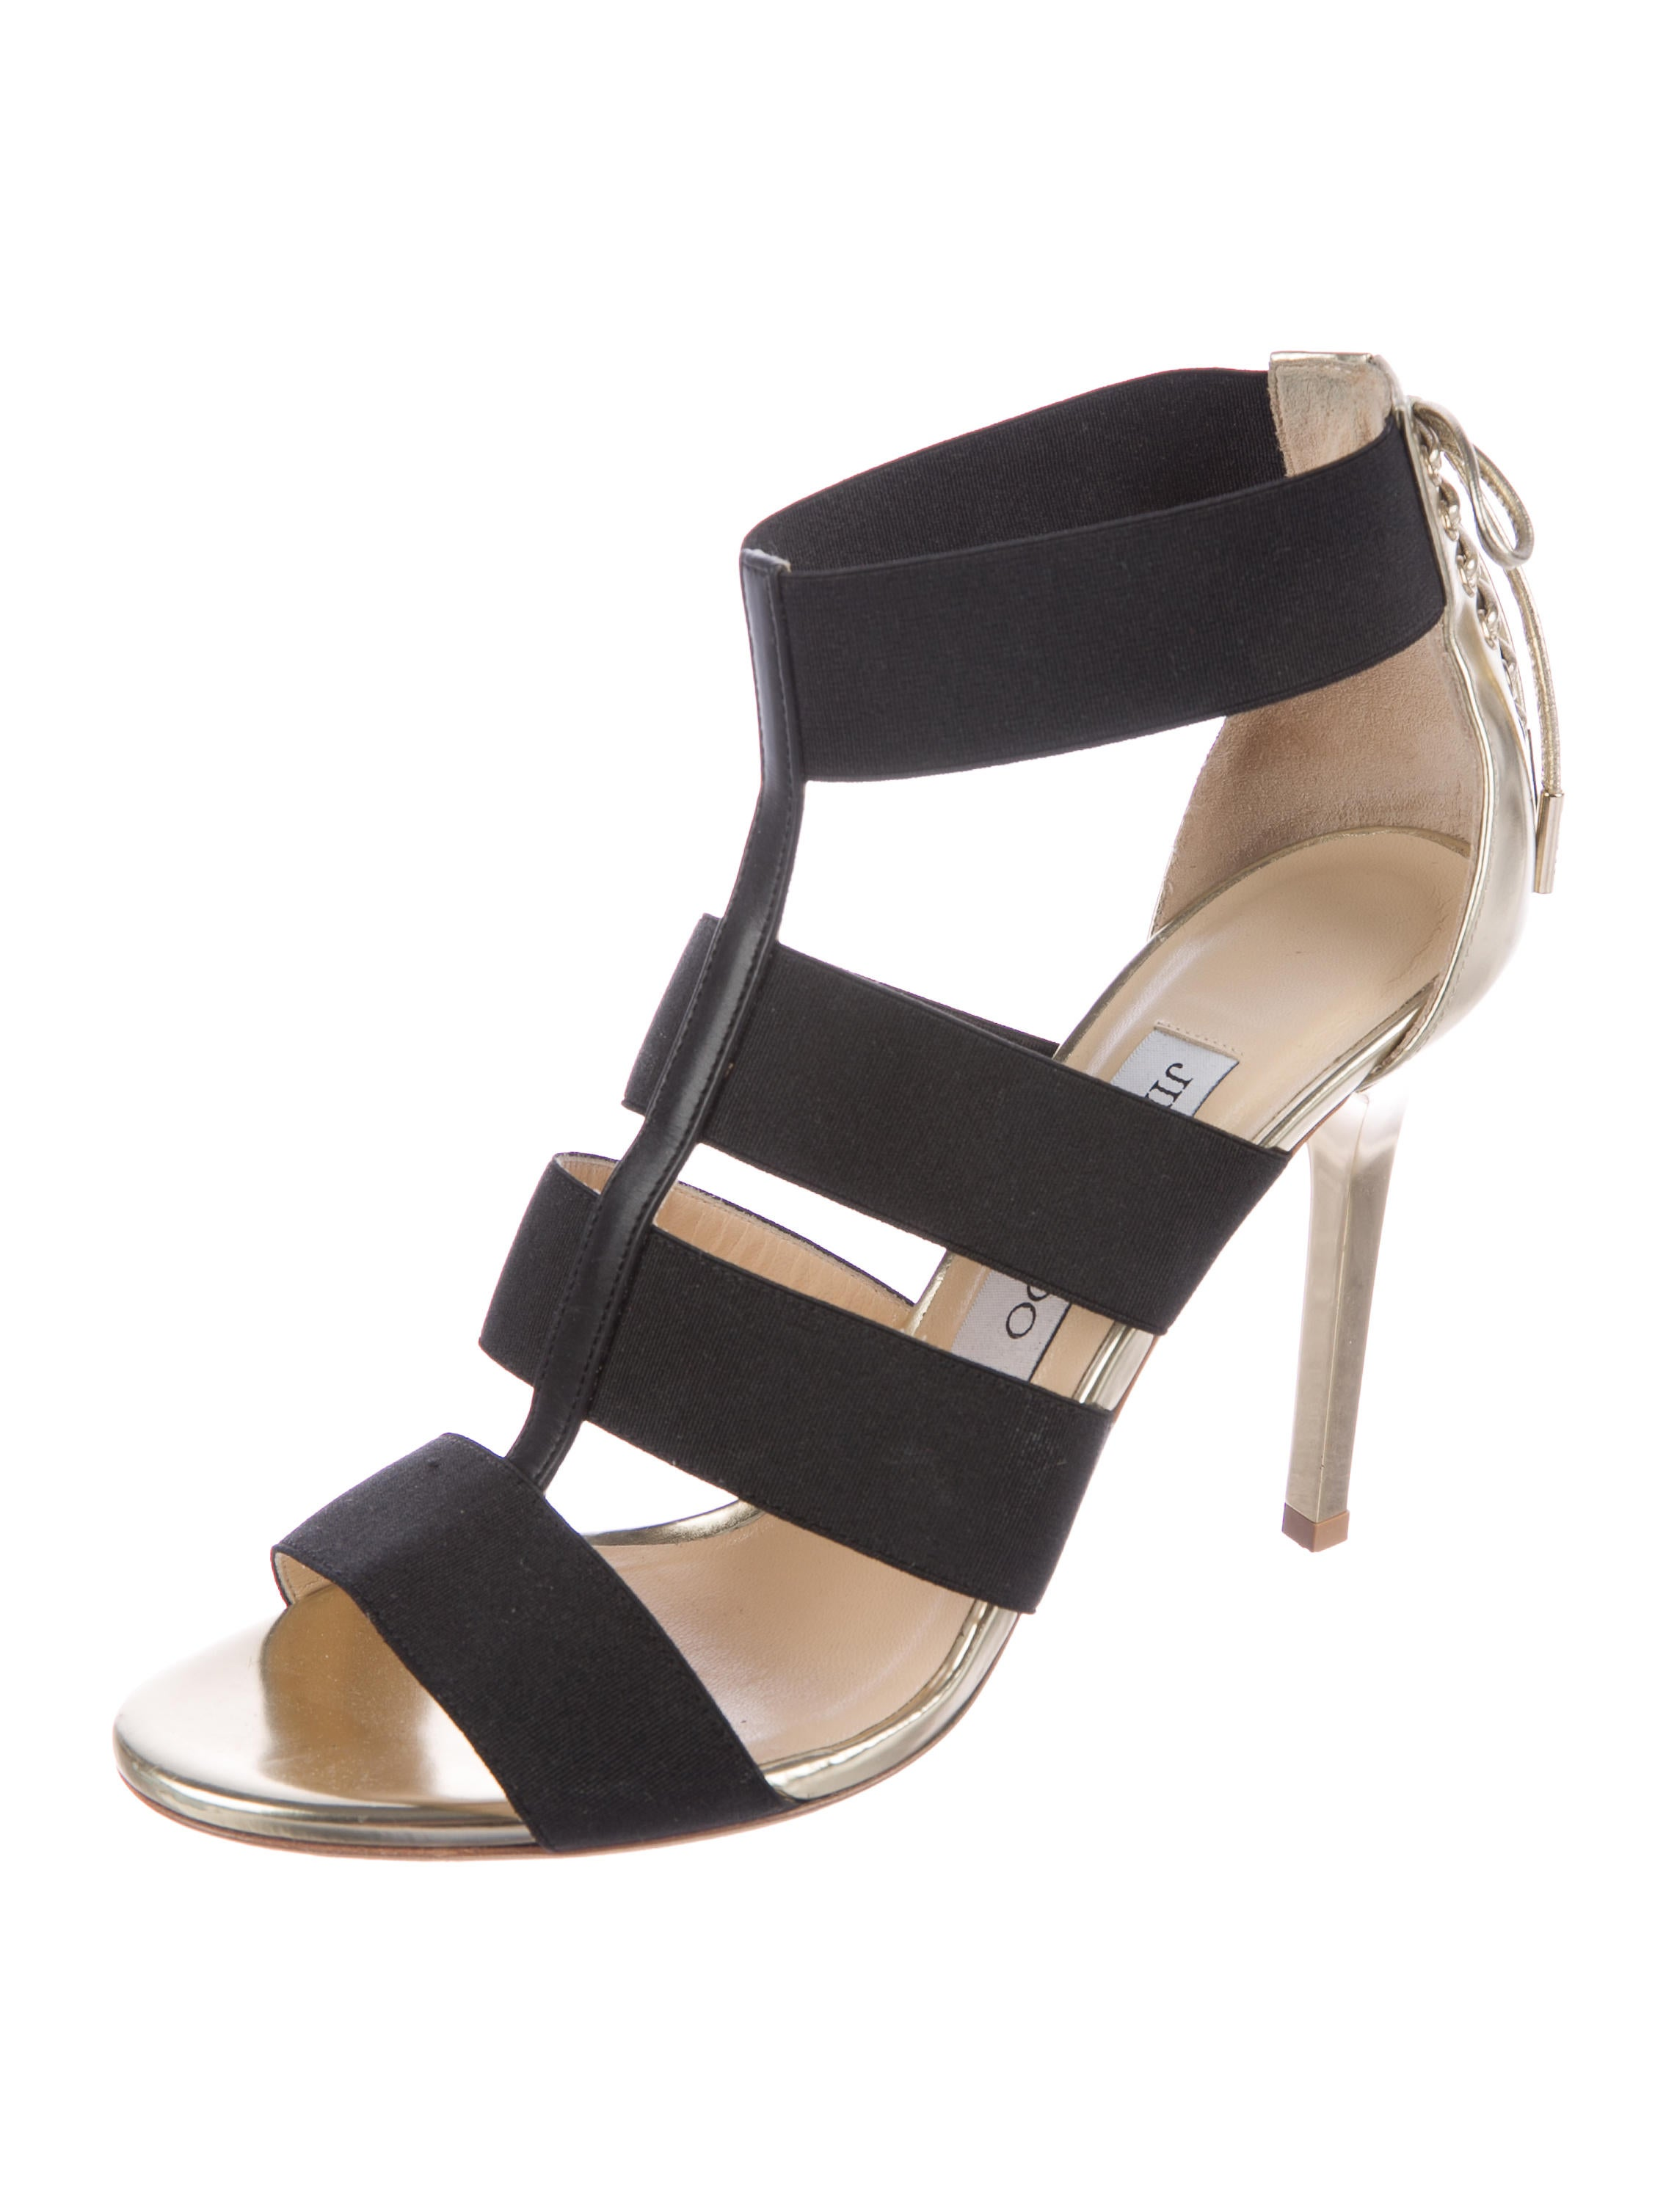 the cheapest sale online Jimmy Choo Caged Elasticized Sandals buy cheap shop collections online UFc7GZ9Xp